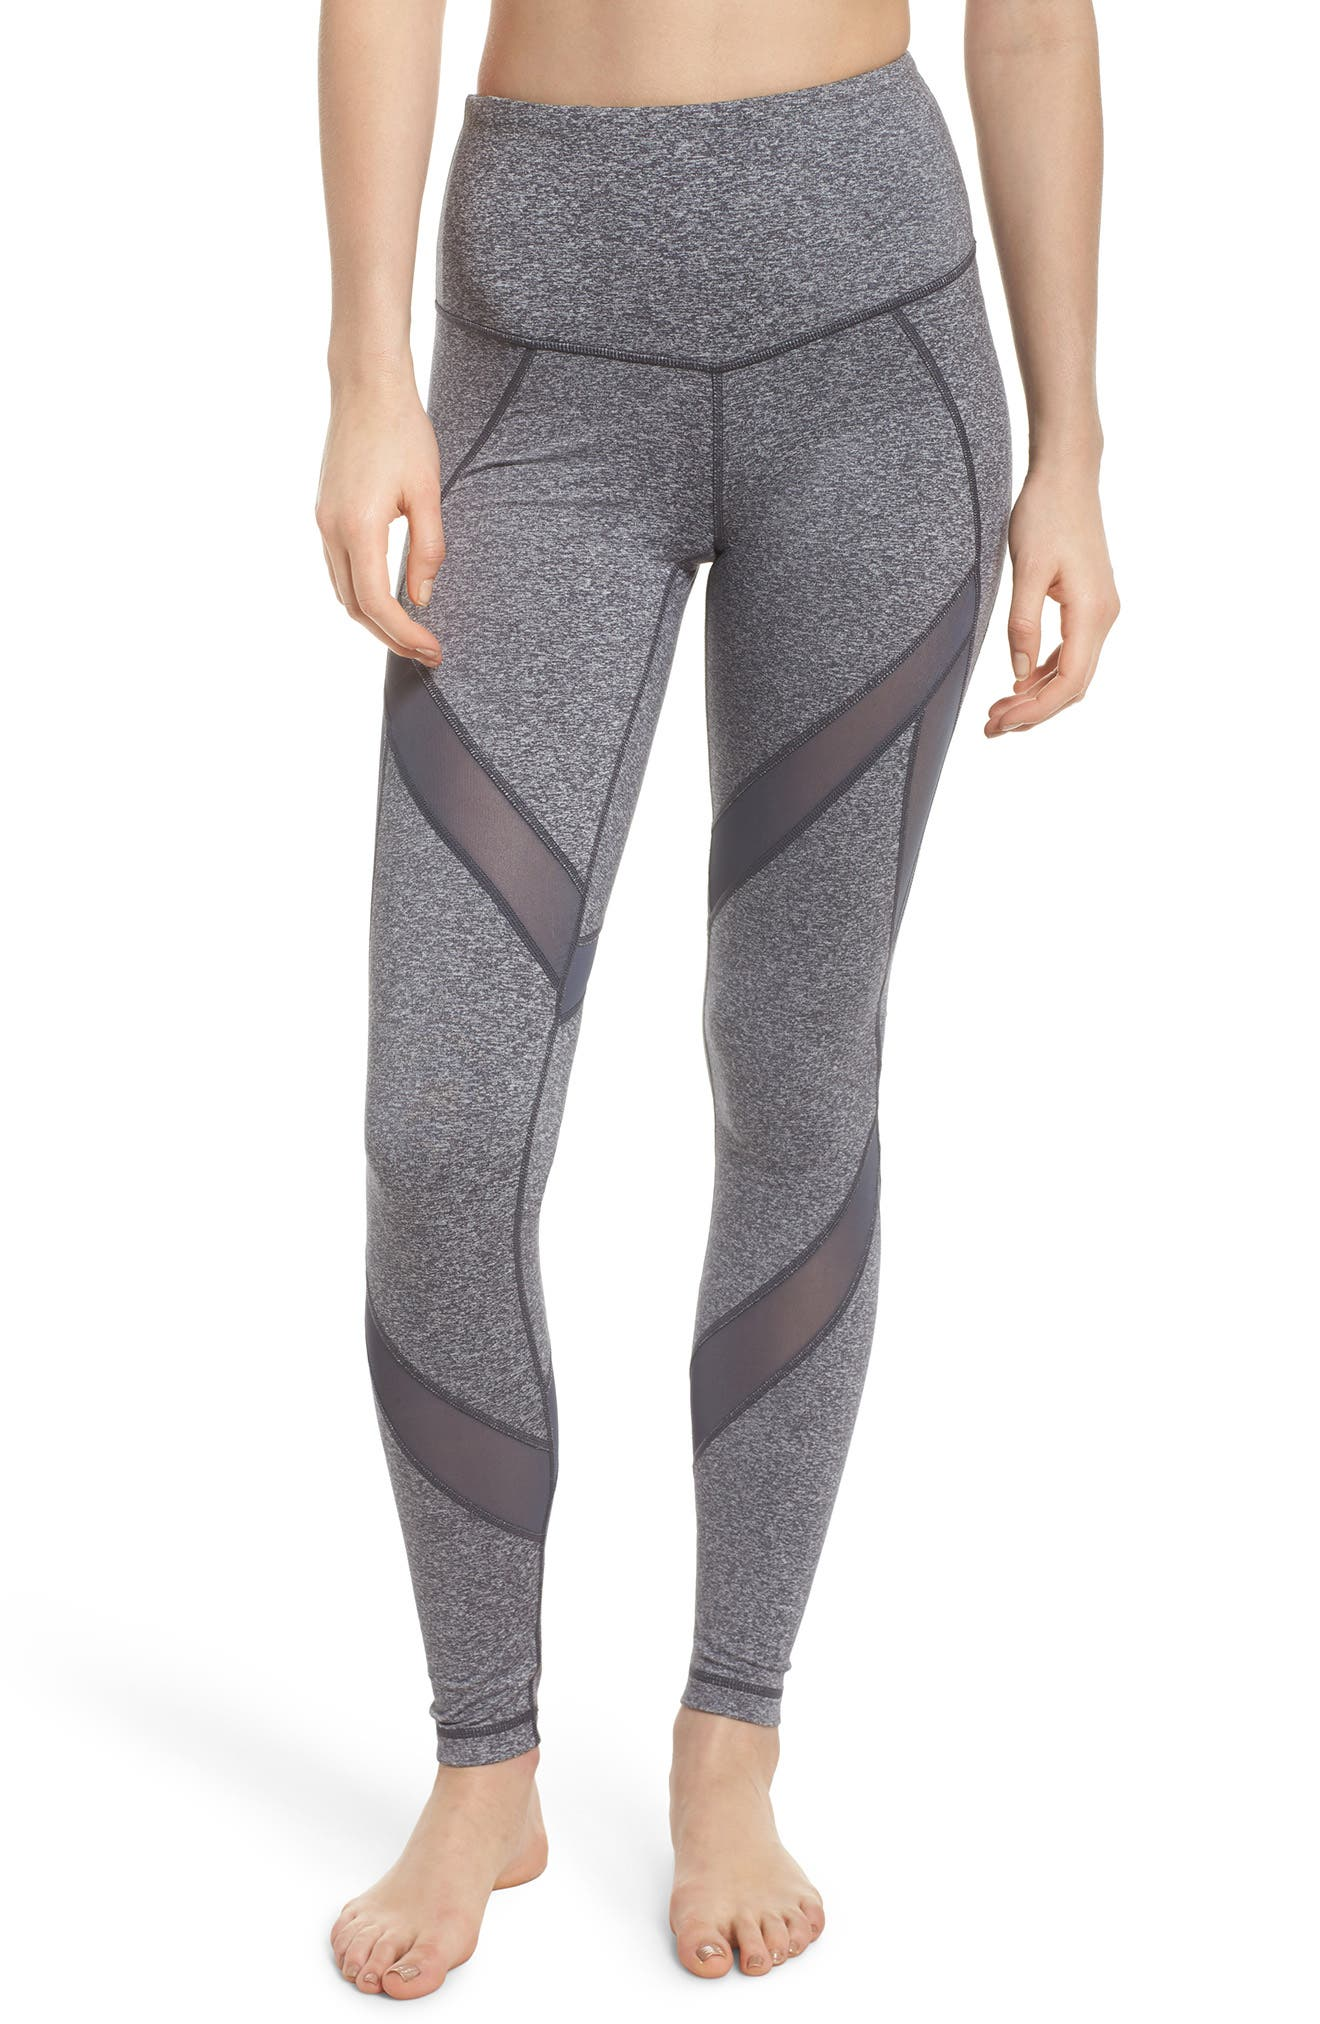 In Dreams High Waist Leggings,                         Main,                         color, GREY GRAPHITE MELANGE